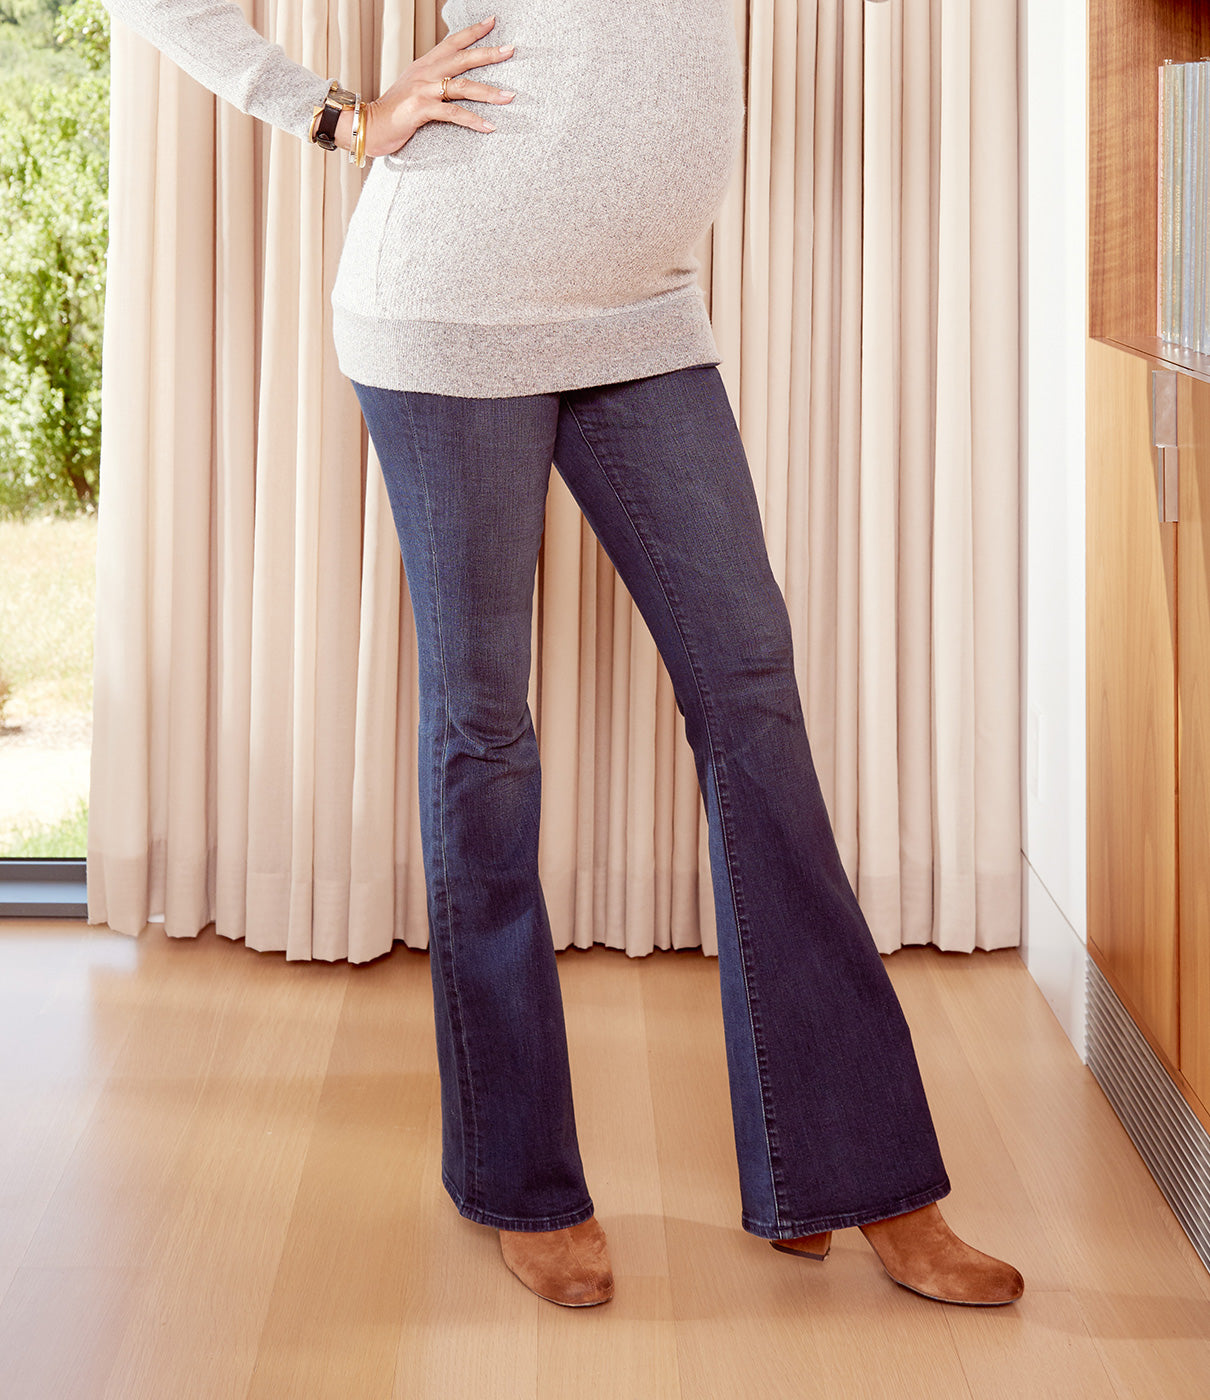 FASHION + FUNCTIONThe crossover design keeps your back cool. The premium denim without the premium price keeps your pre-pregnancy style through postpartum.